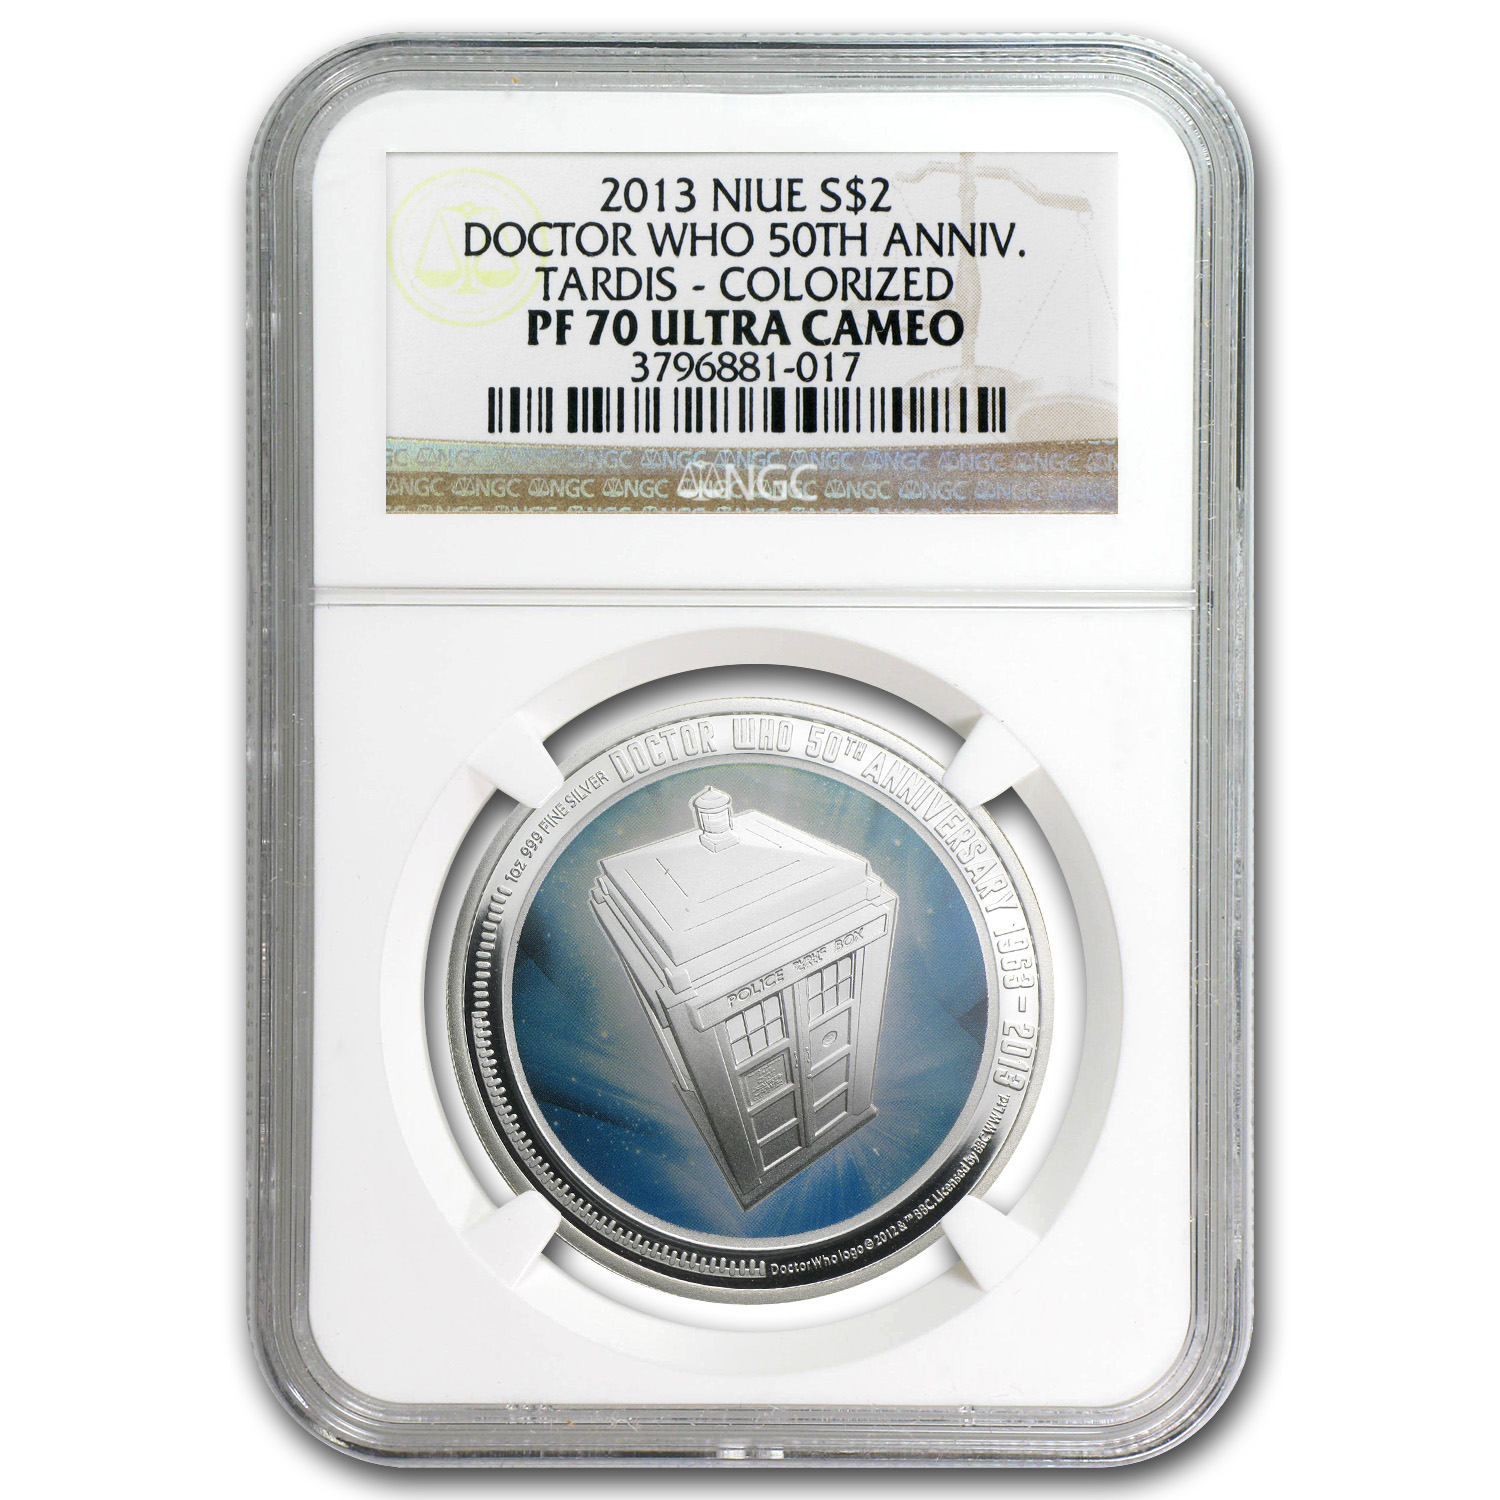 2013 Niue 1 oz Silver $2 Doctor Who 50th Anniversary PF-70 NGC